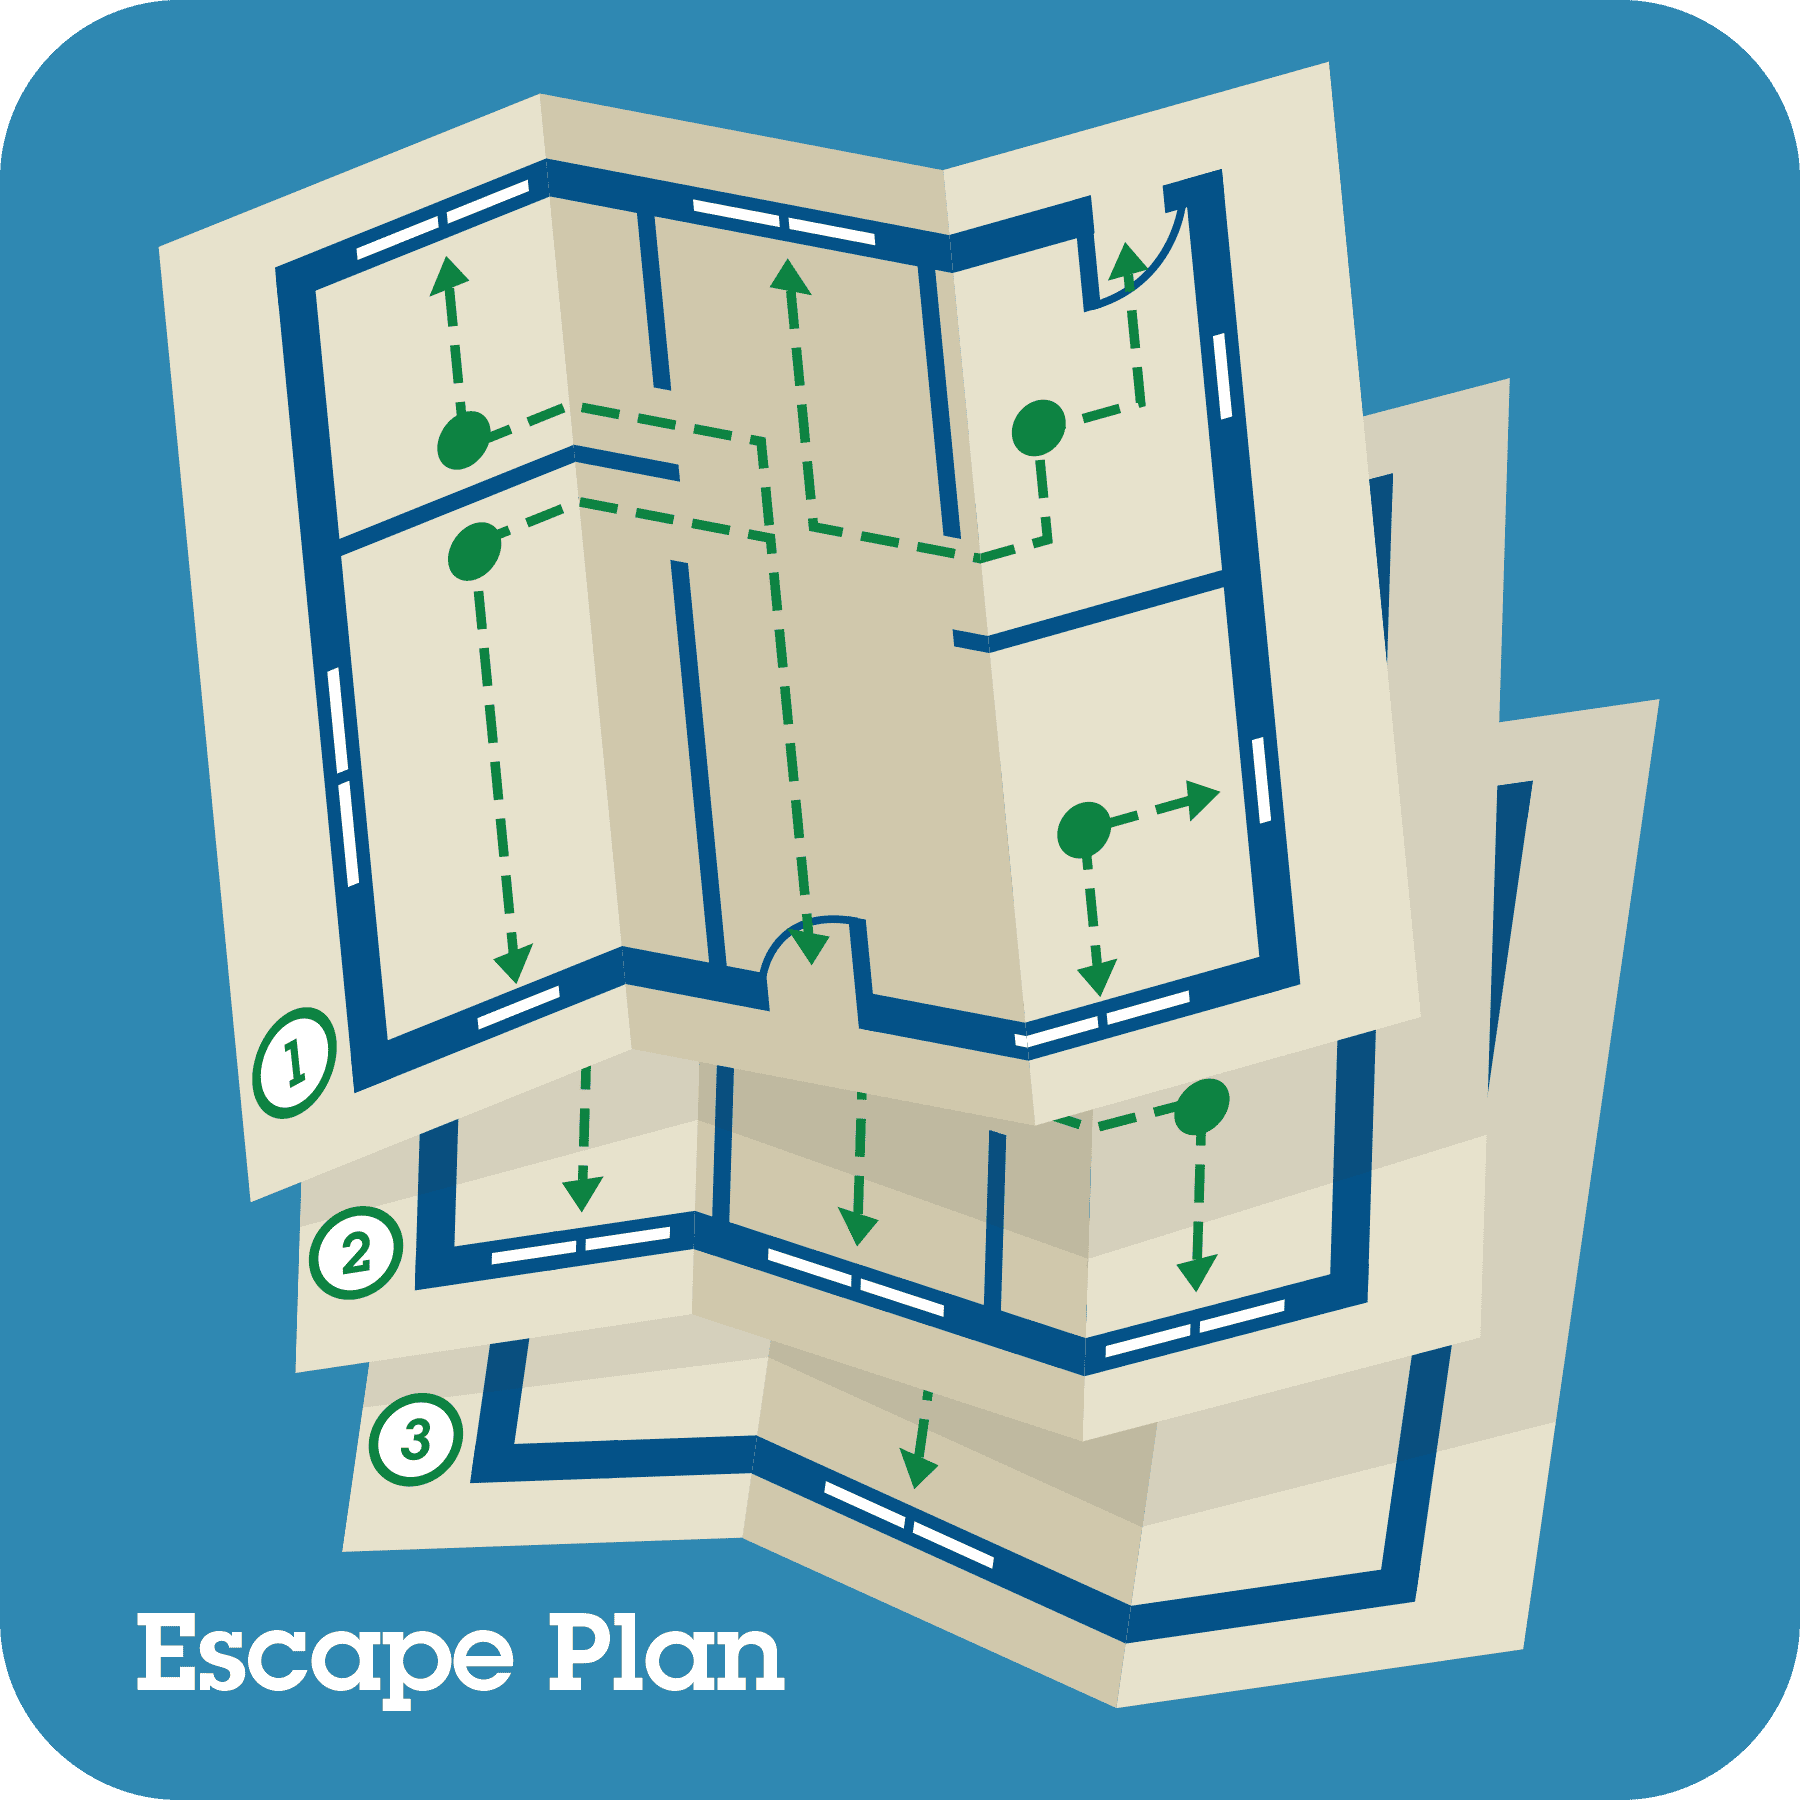 Maps of a home escape plan